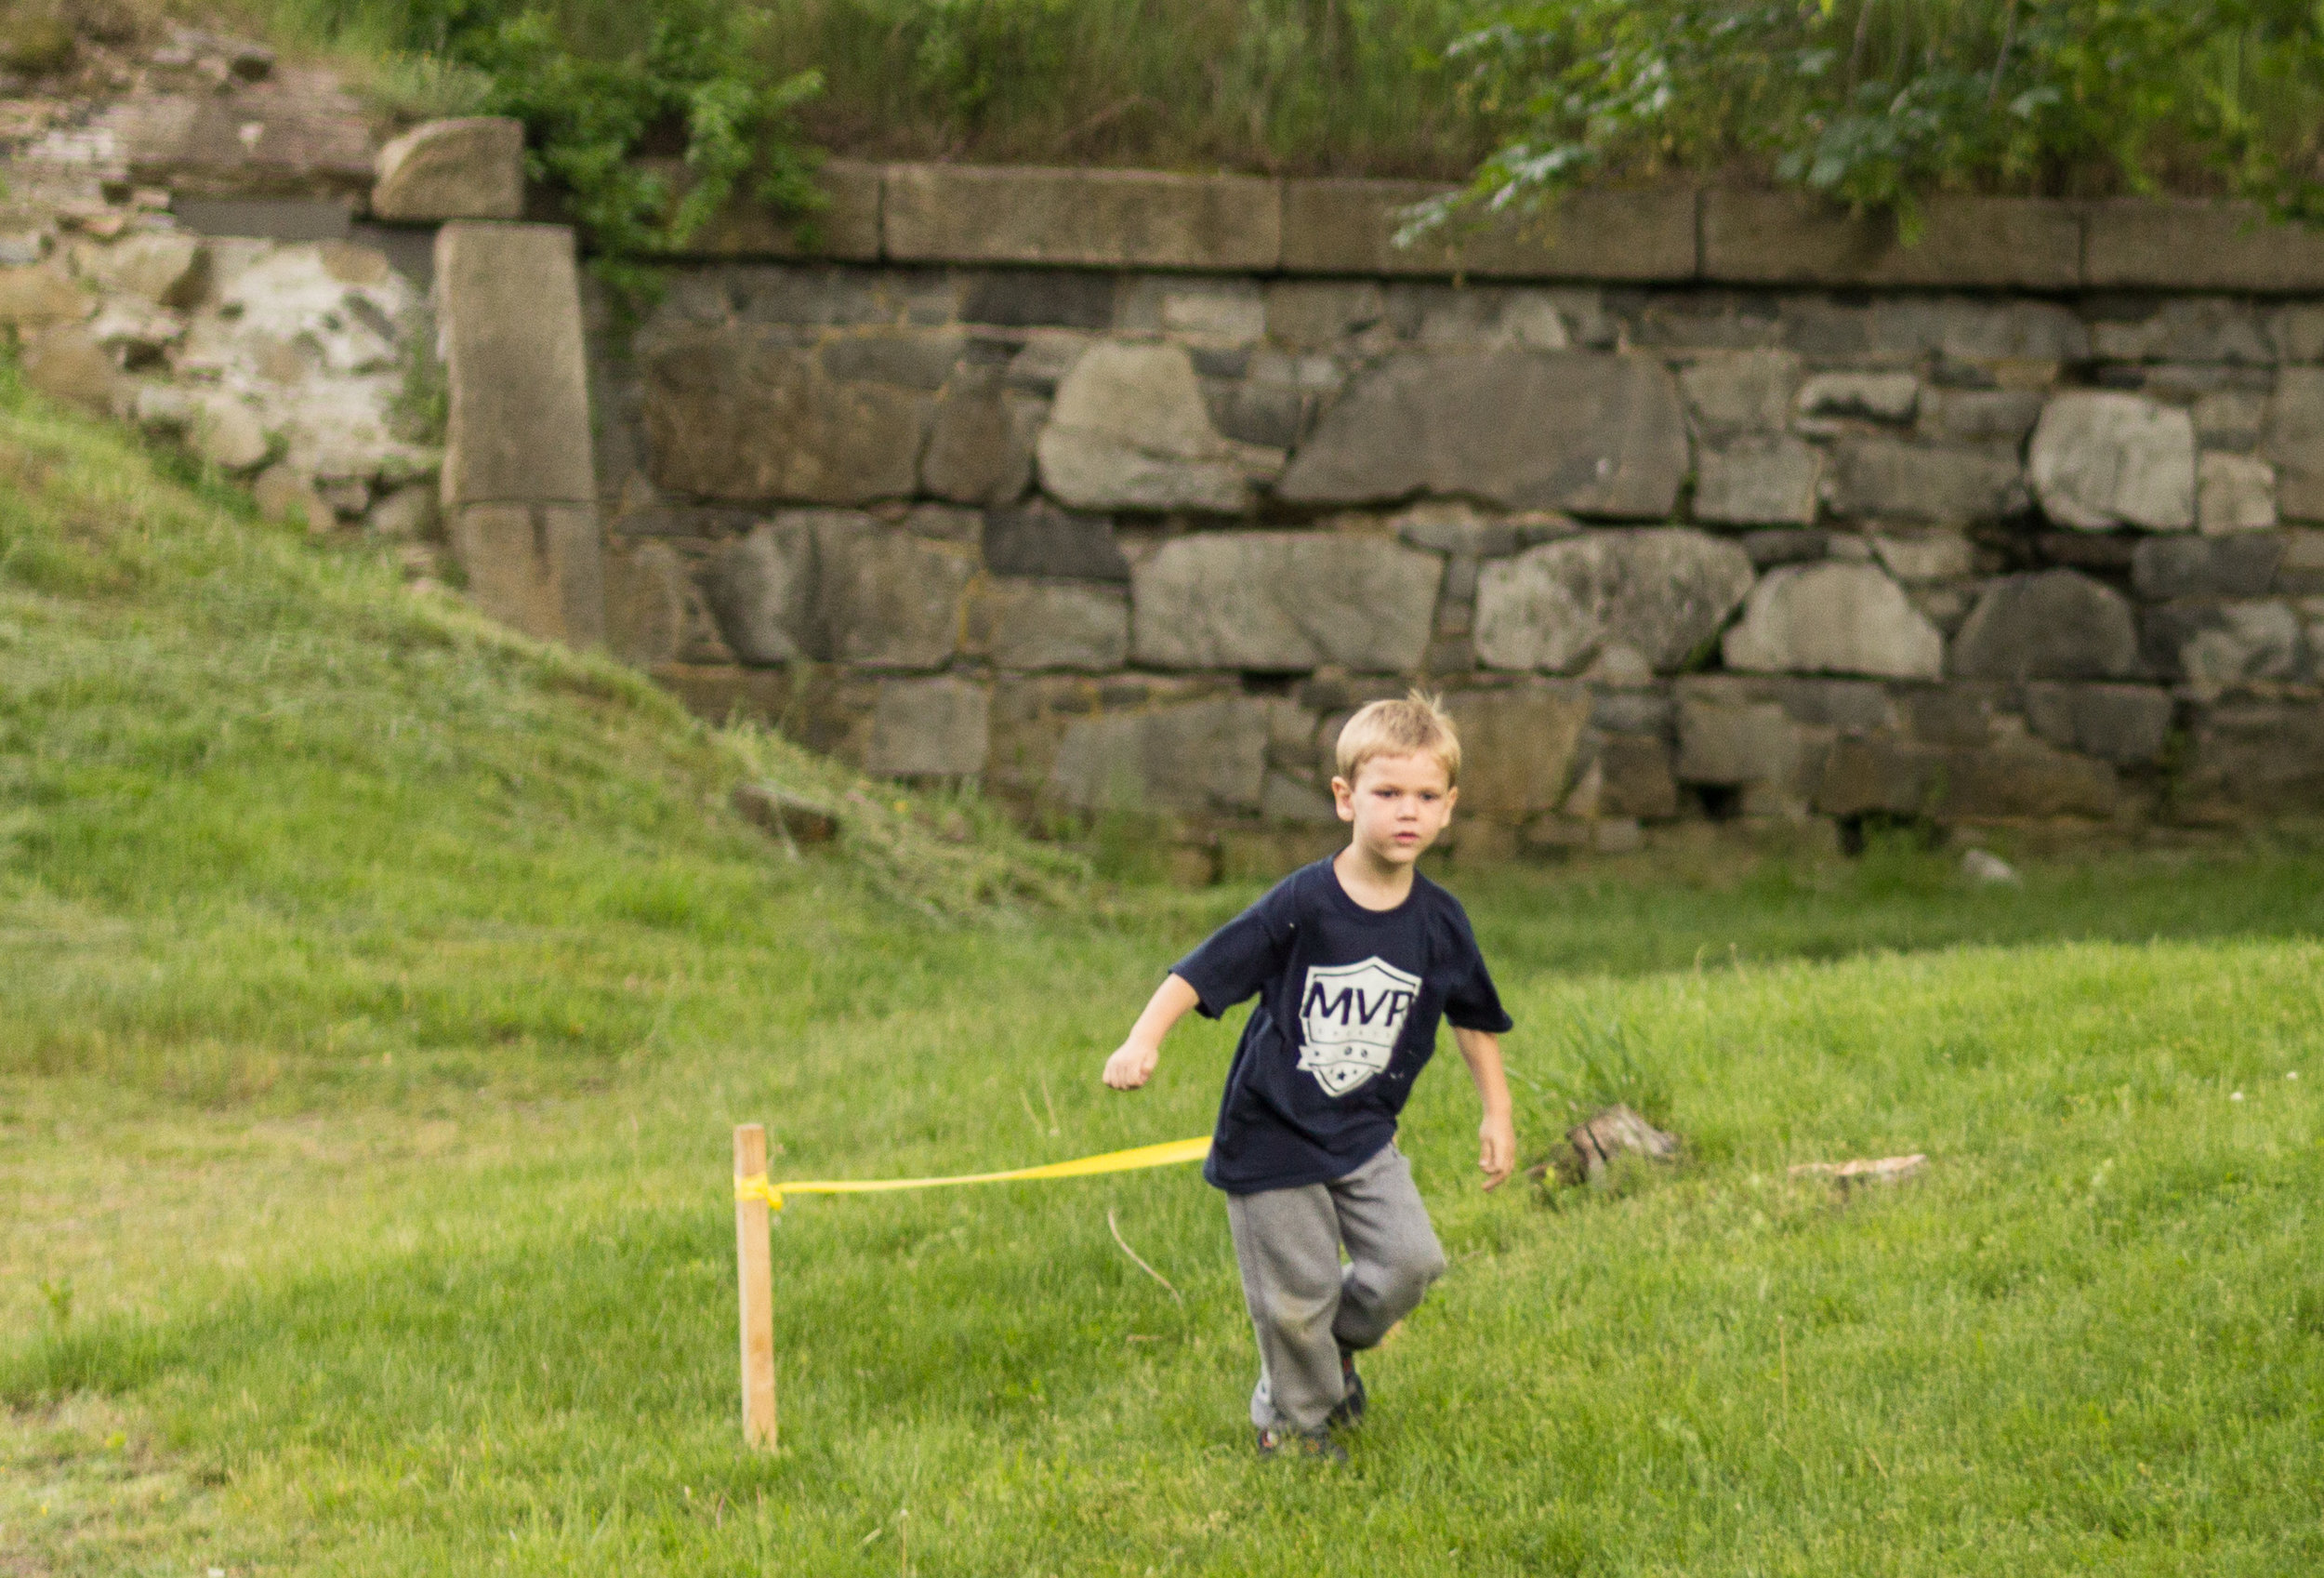 Cub Scouts Obstacle Course_25.jpg